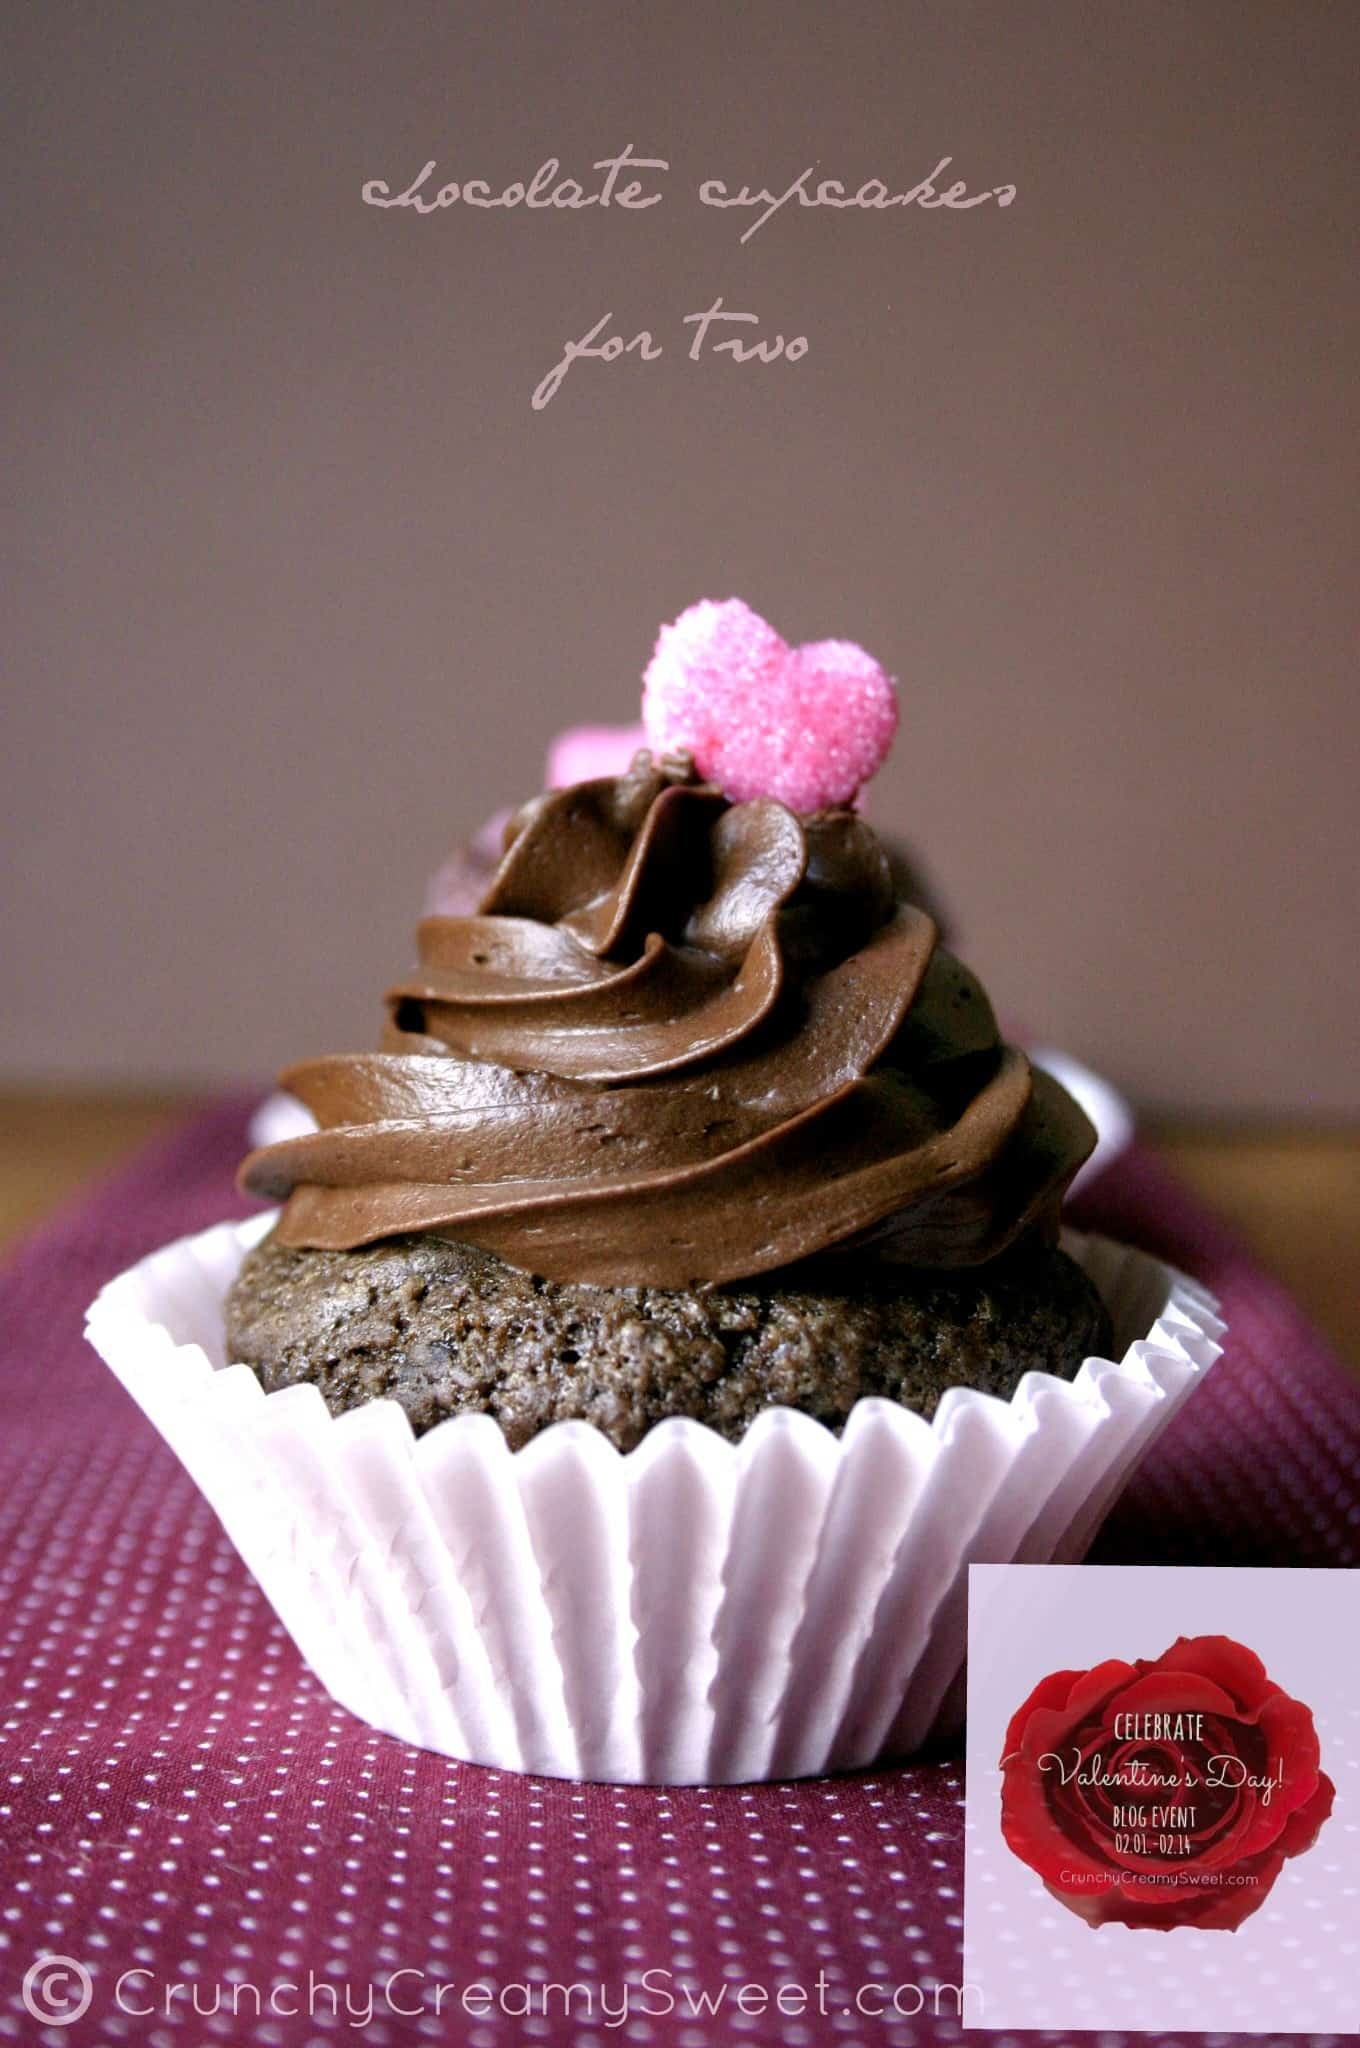 chocolate cupcakes for two logo Chocolate Cupcakes For Two   Valentines Day Celebration Event